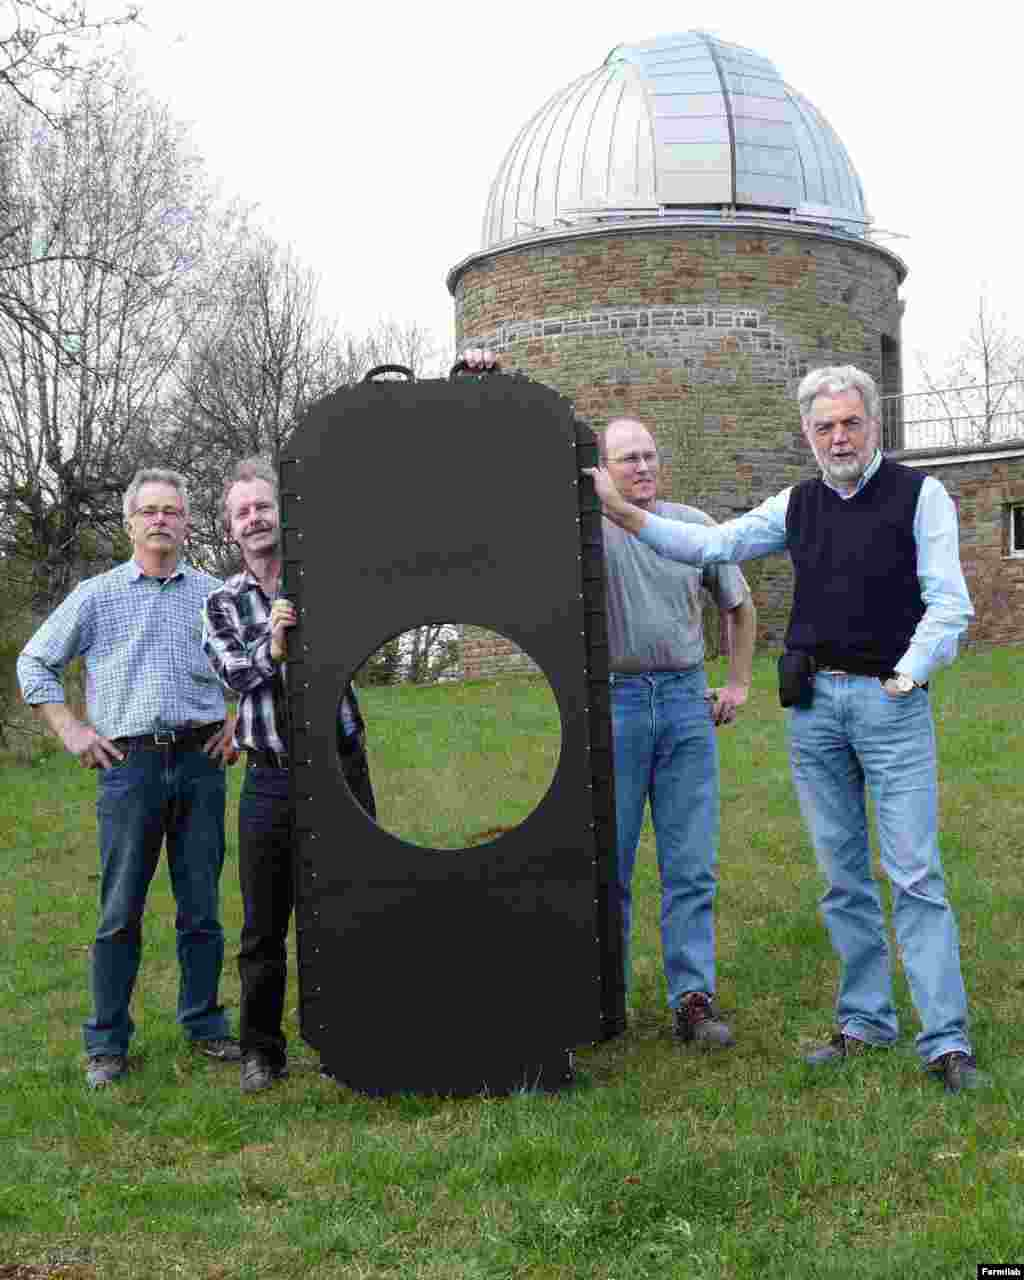 The University of Bonn team displays the world's largest shutter in front of the Schmidt telescope dome of the Hoher List Observatory.